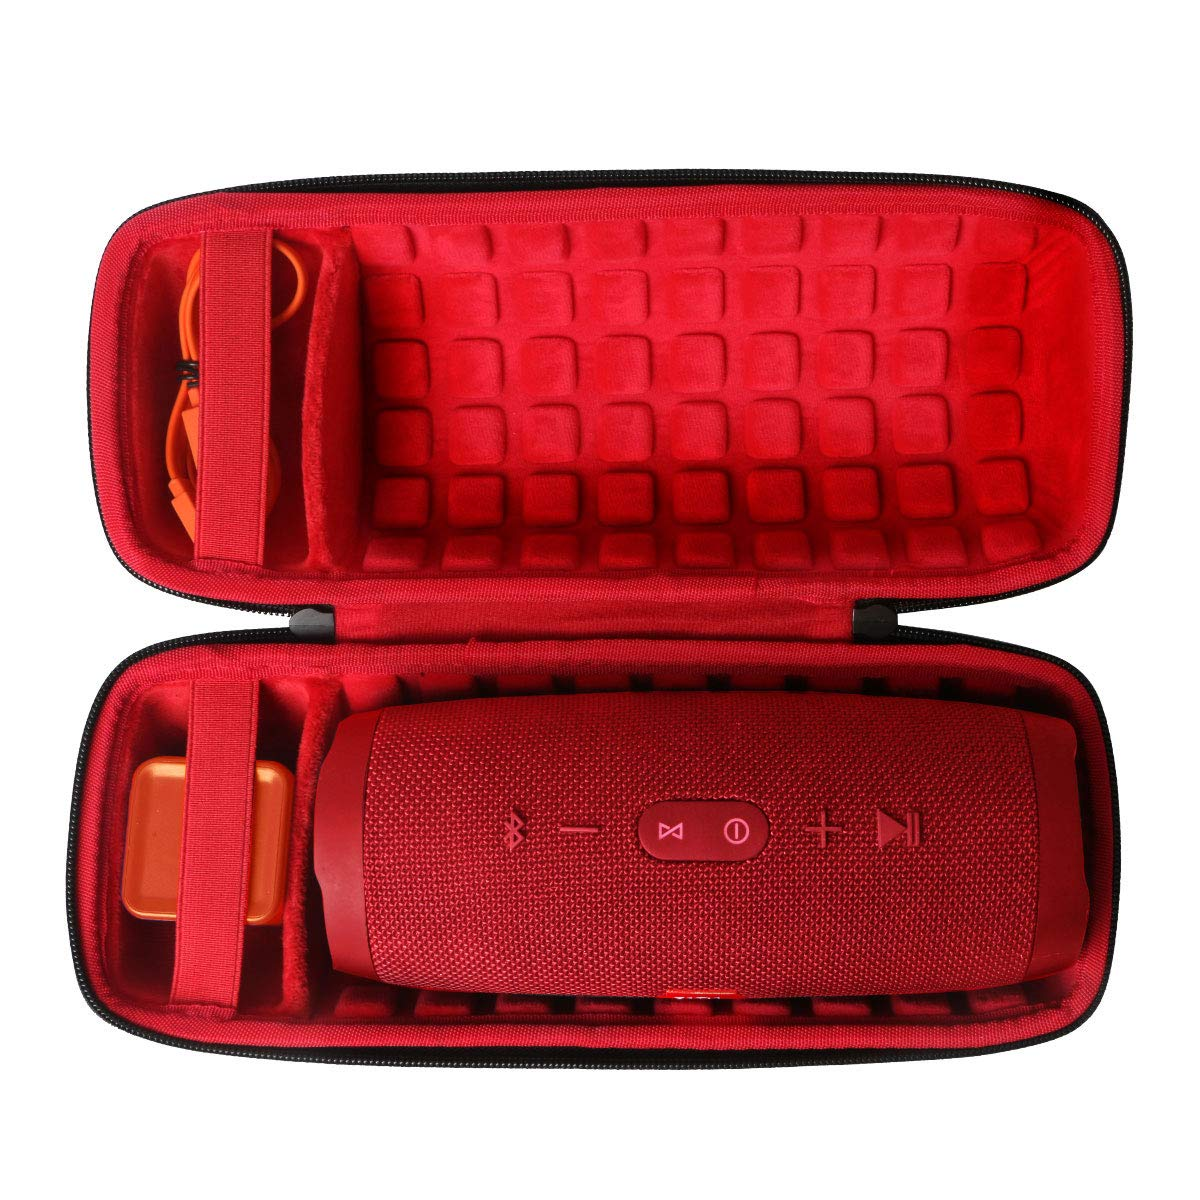 co2crea Hard Travel Case for JBL Charge 4 Waterproof Bluetooth Speaker (Outside Black and Inside Red)